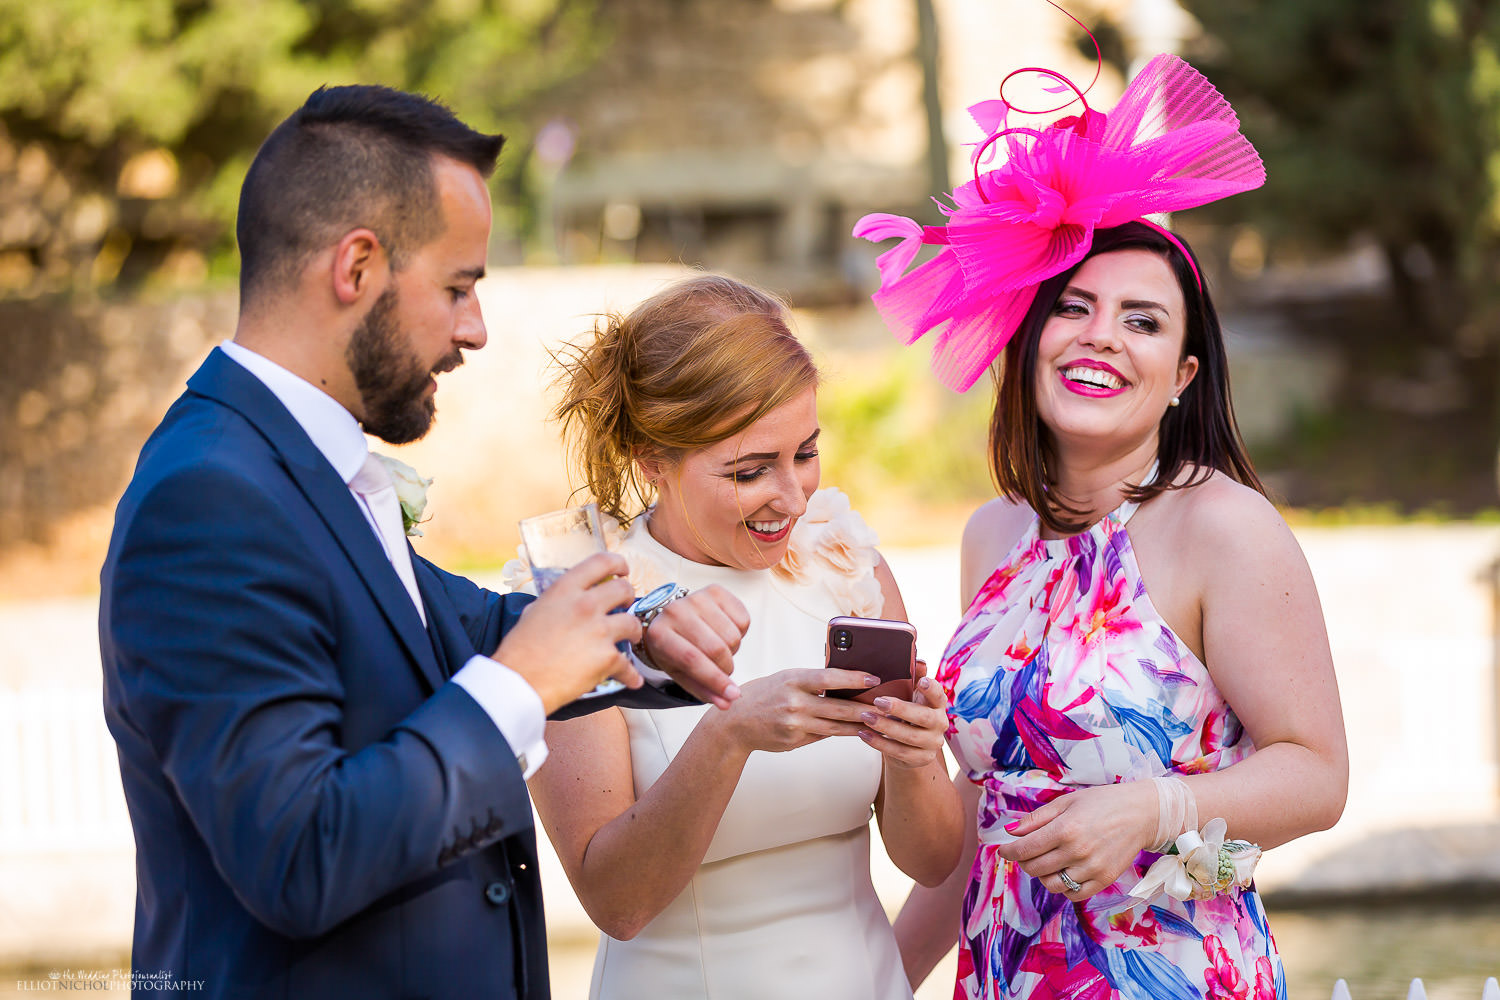 Candid photo of wedding guests enjoying the wedding day. Photo by Elliot Nichol Photography.